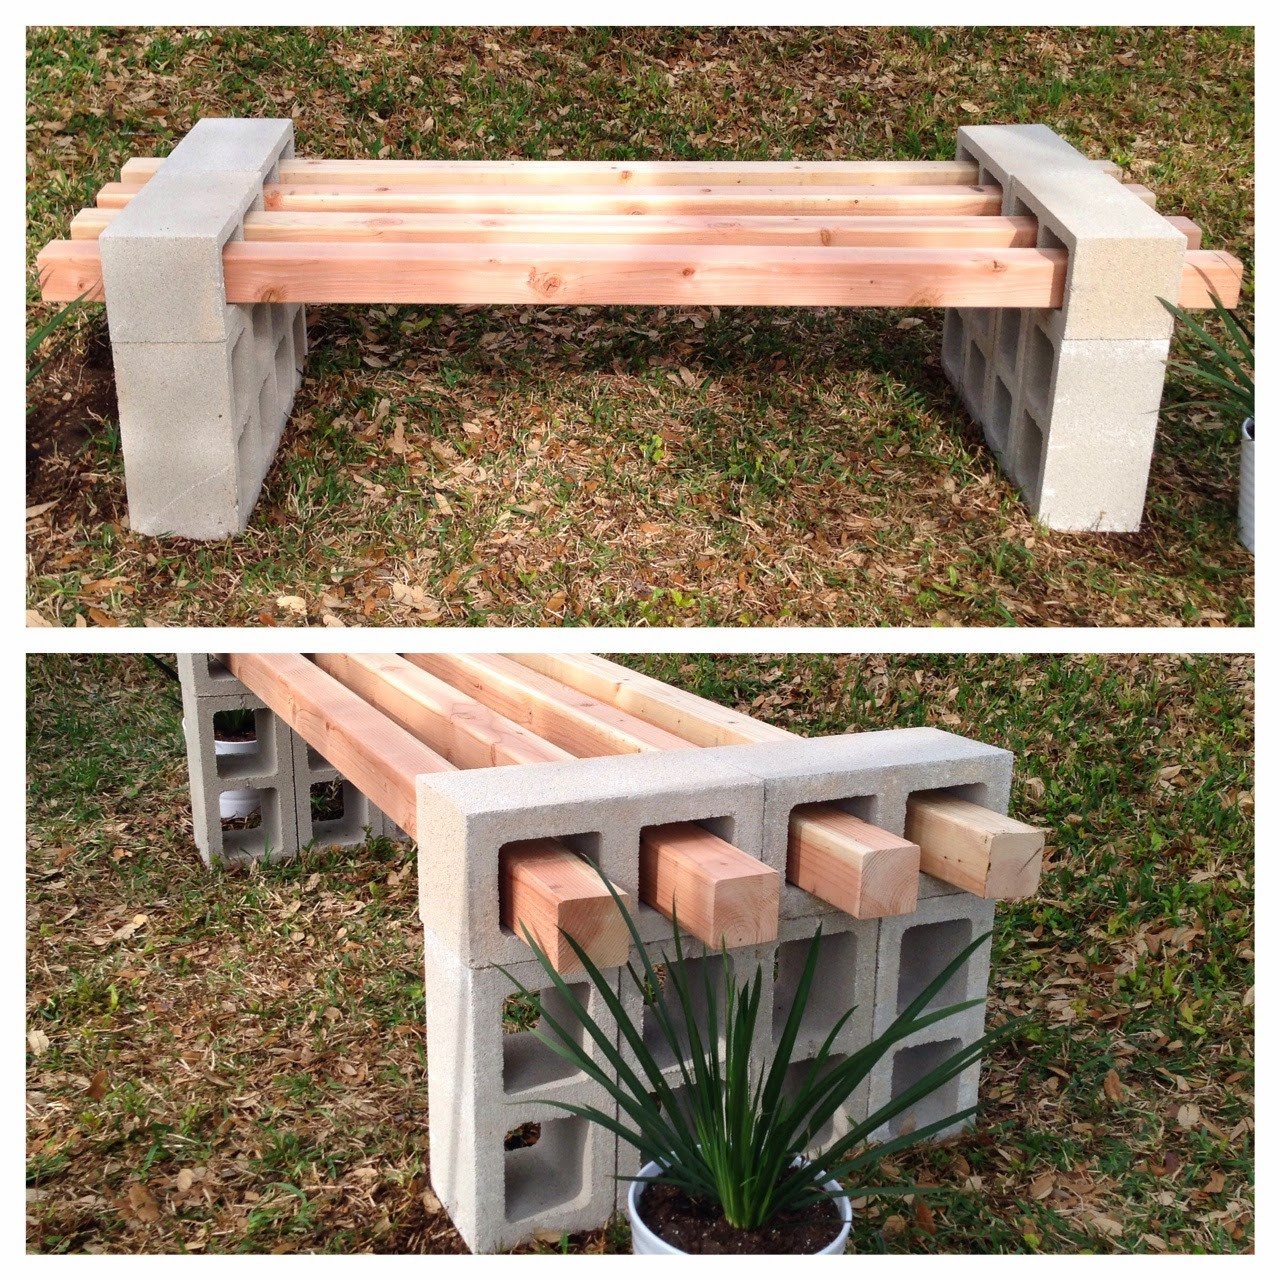 Best ideas about DIY Wood Bench . Save or Pin 20 Awesome DIY Cinder Block Projects For Your Homestead Now.